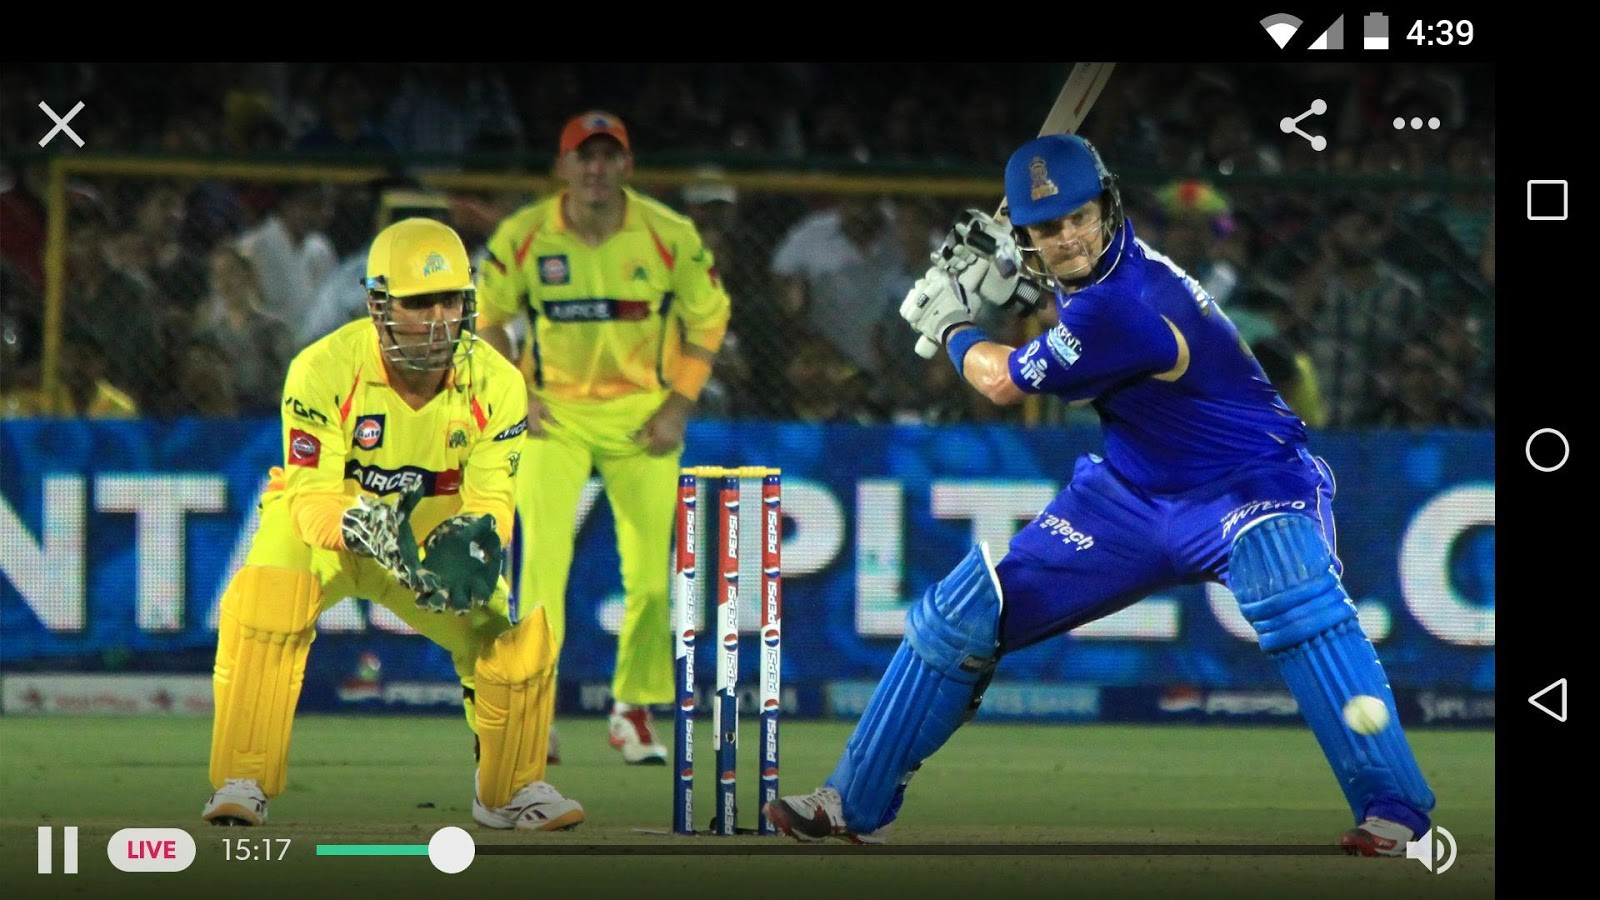 Hotstar Android App: Watch Live Cricket Match Online ...